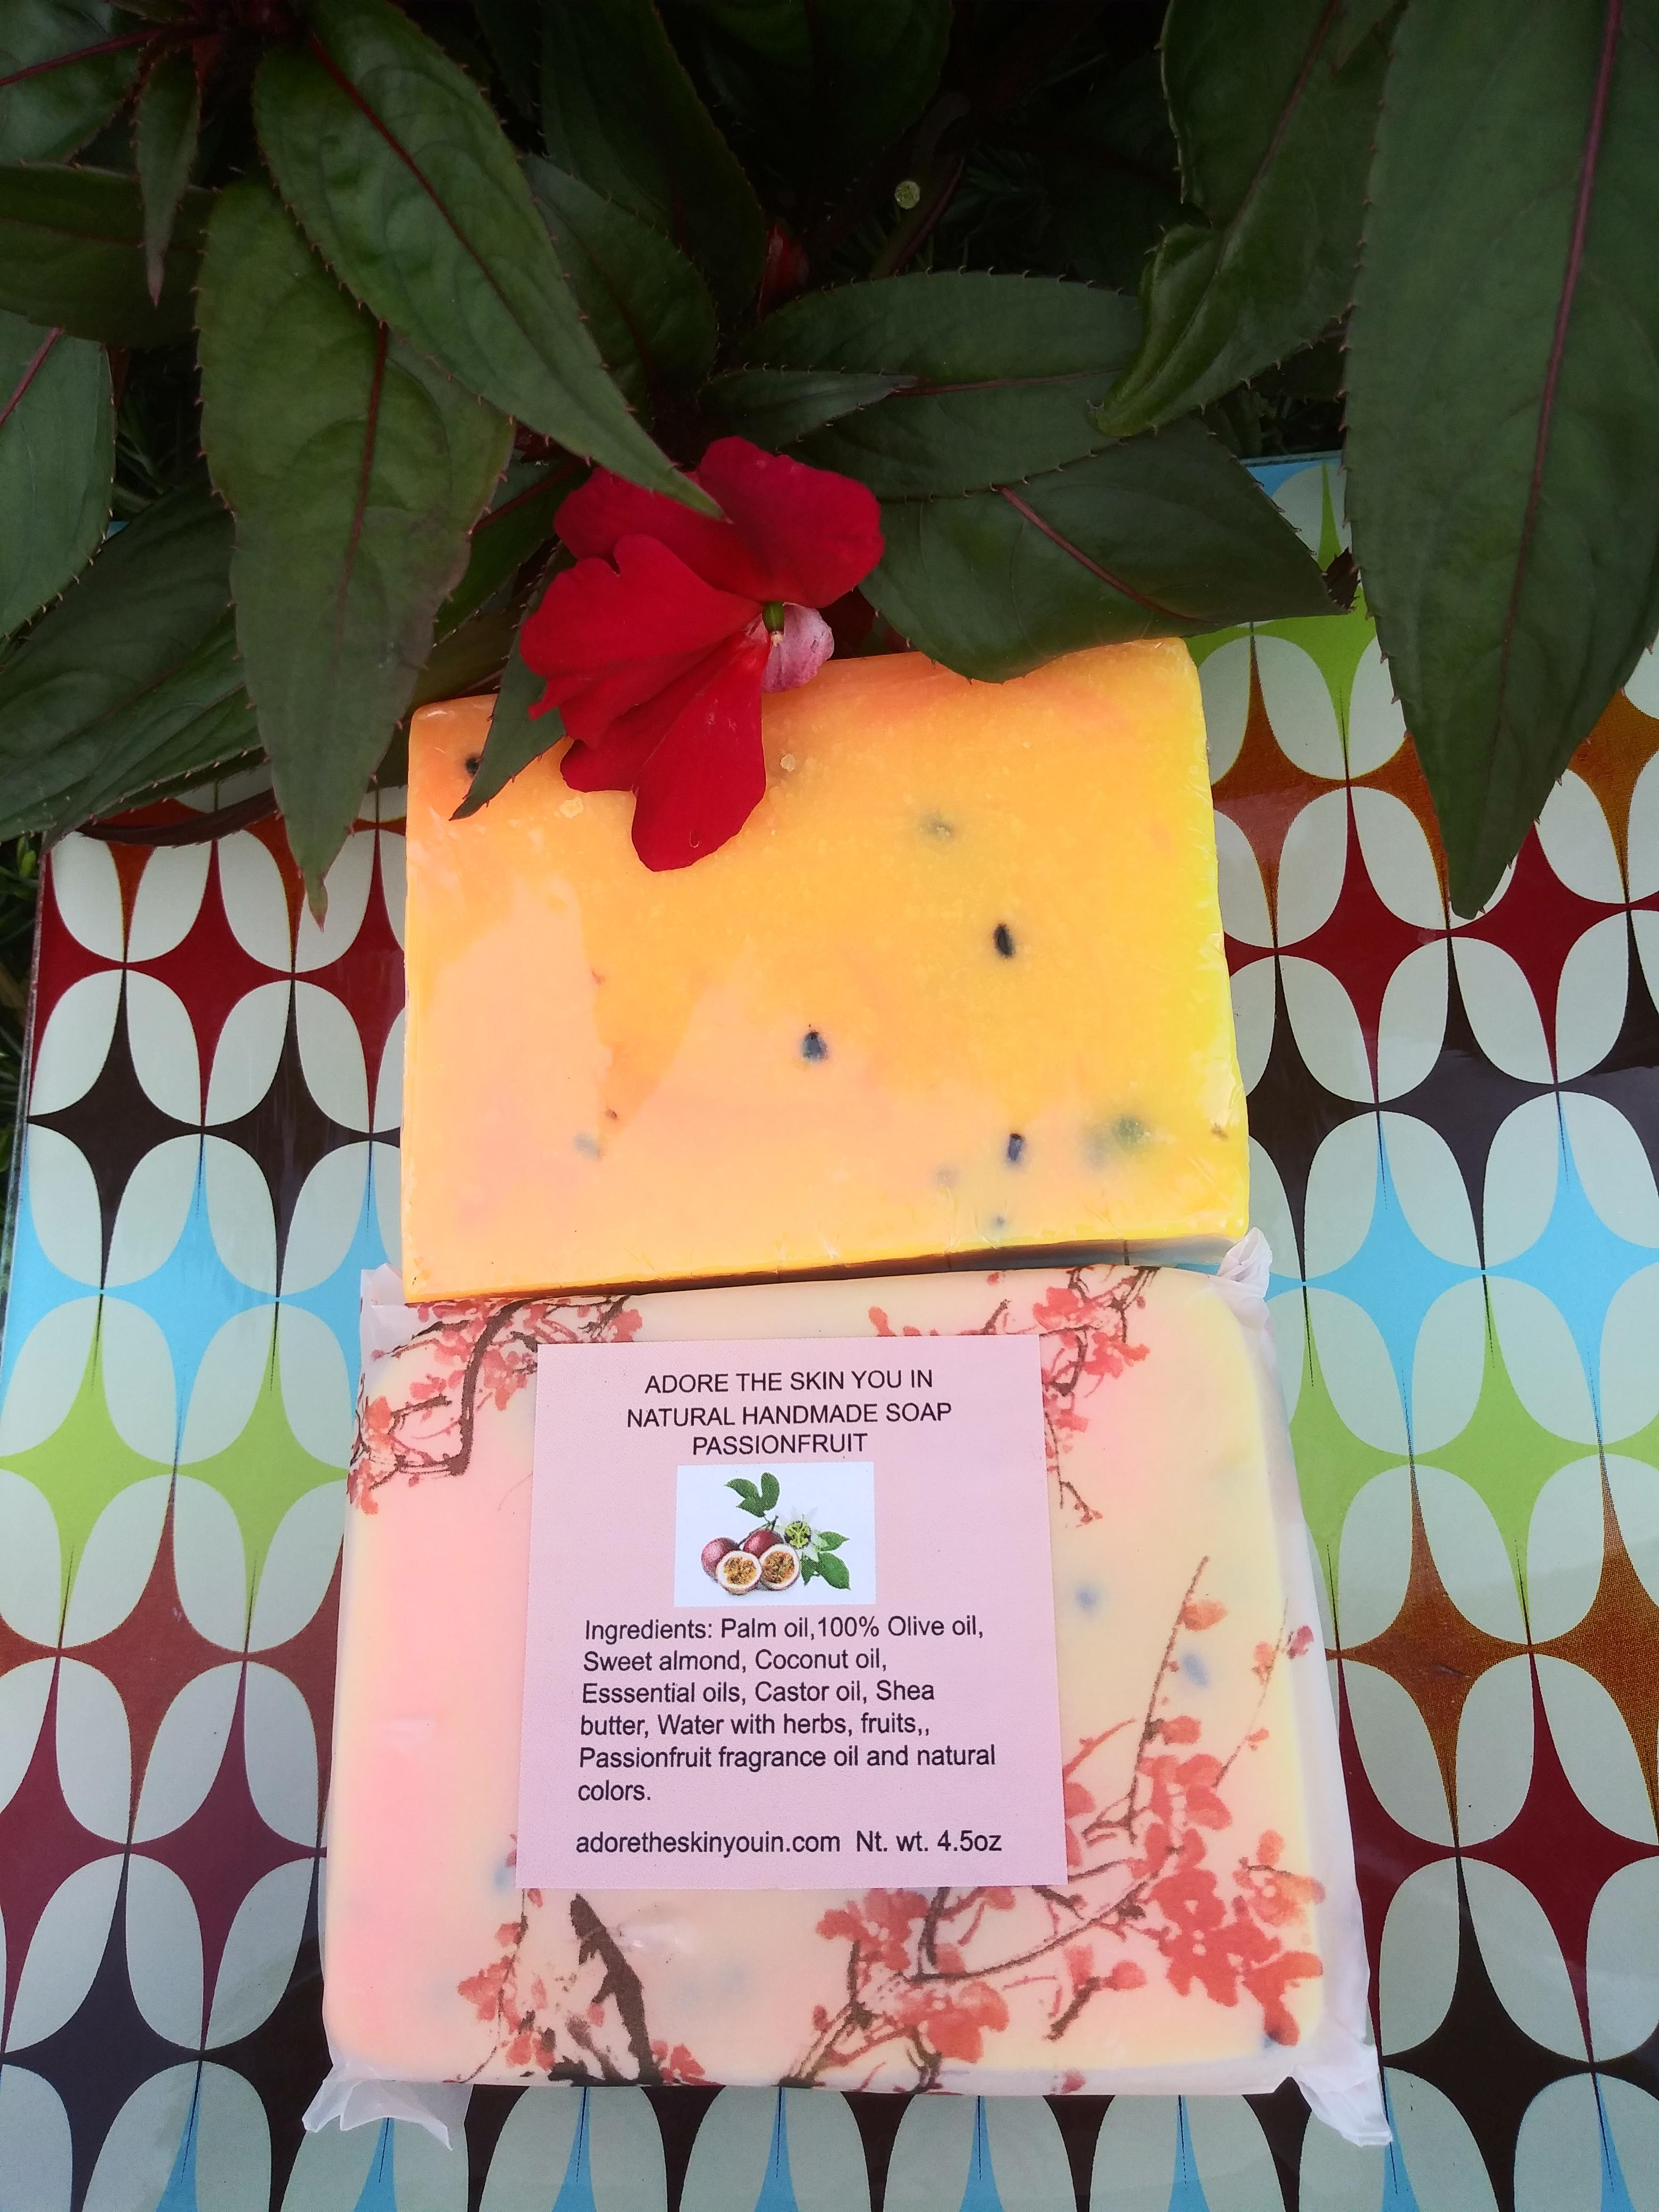 Natural Handmade Soap: Passionfruit (4.5oz).